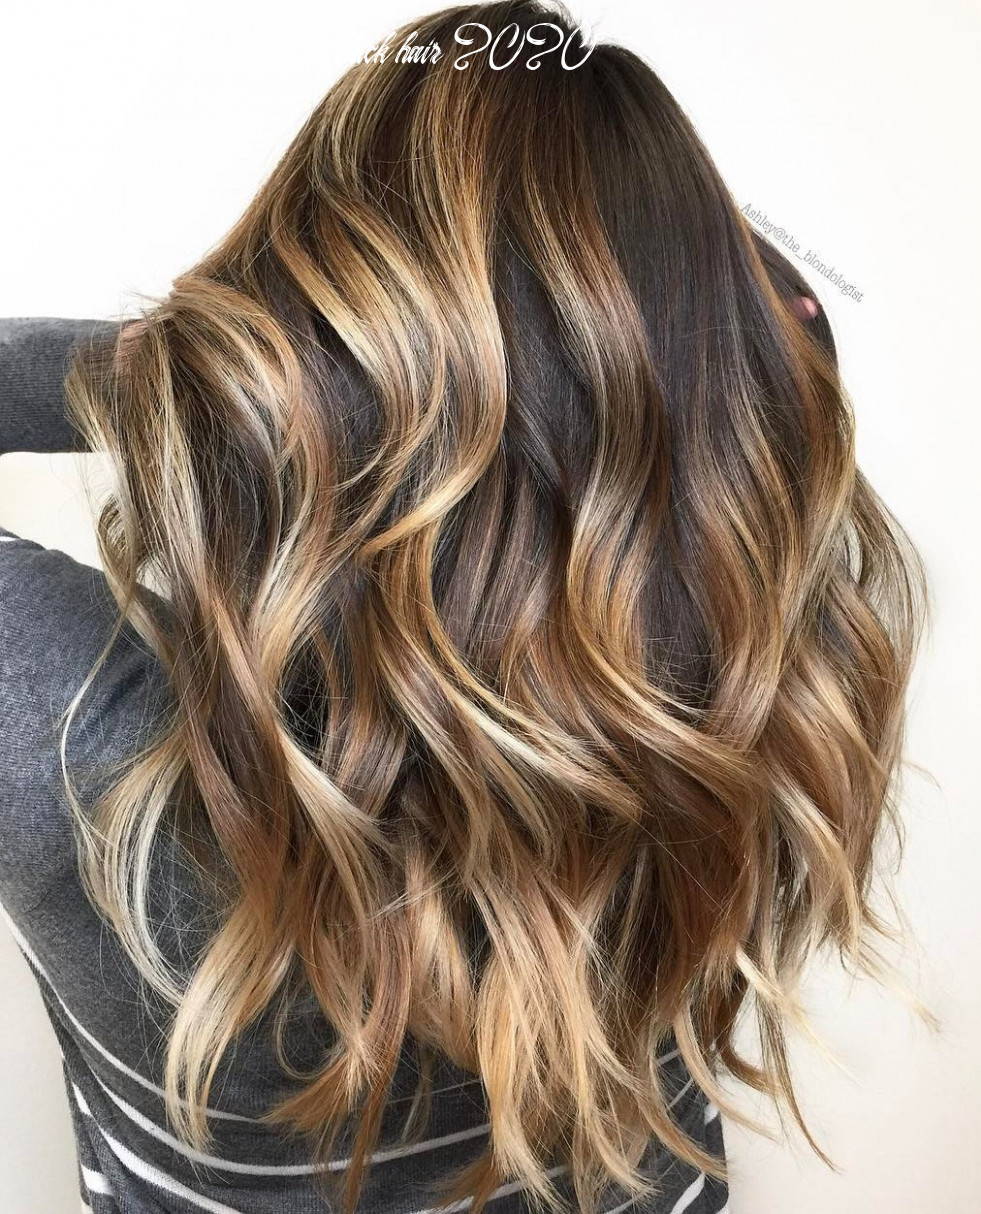 Hairstyles and haircuts for thick hair in 10 — therighthairstyles medium length hairstyles for thick hair 2020